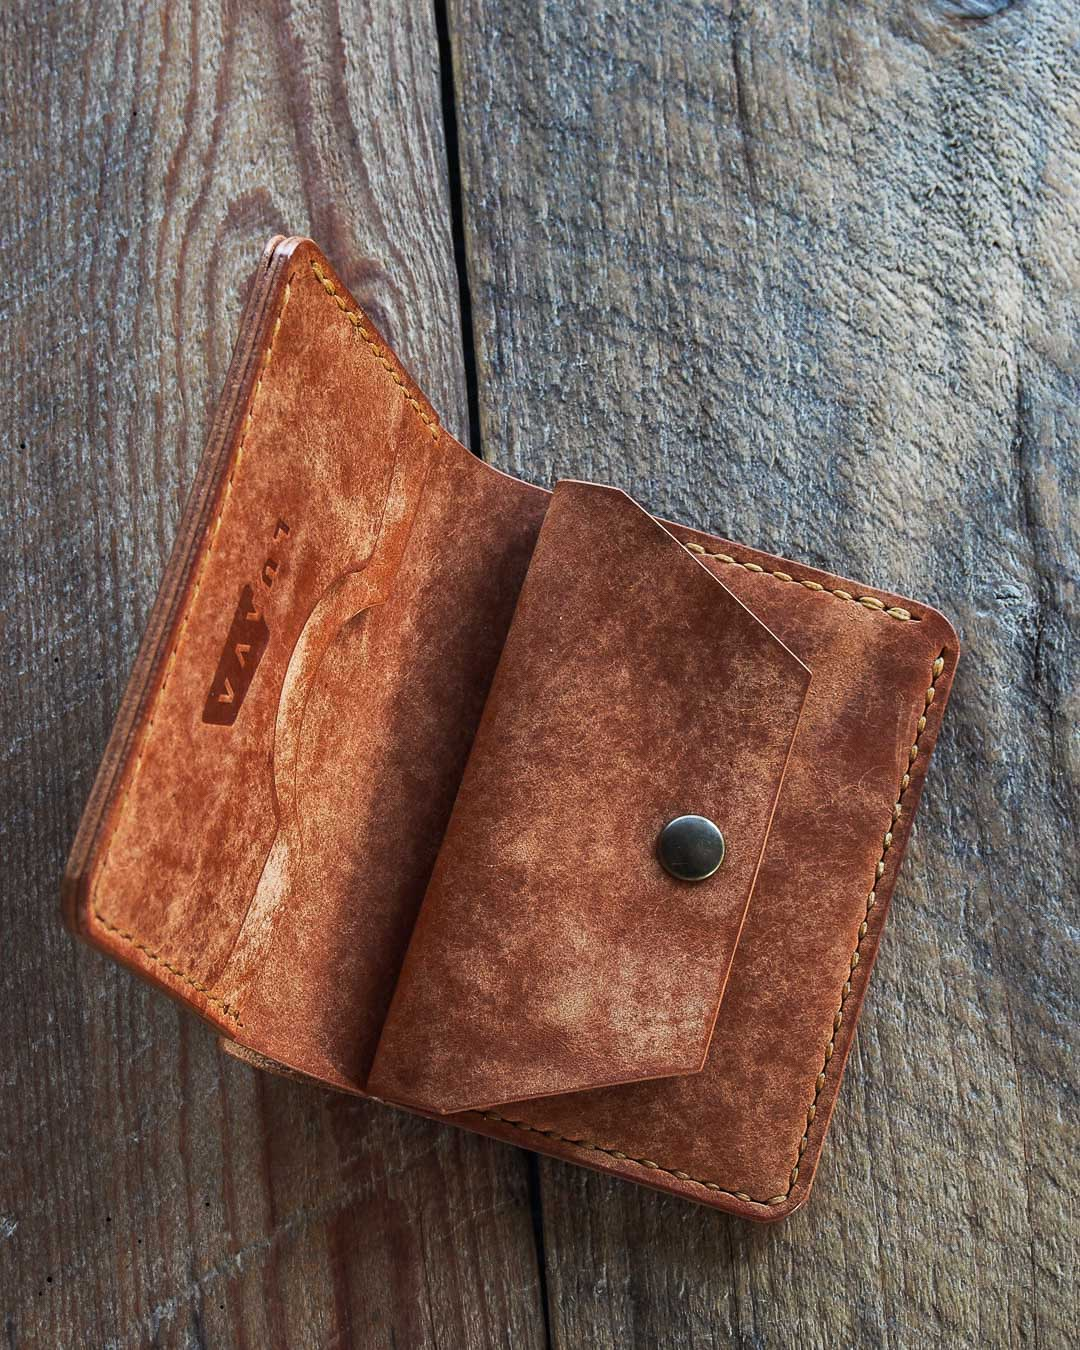 This is Luava handmade leather wallet Koloss. Handcrafted in Finland and it's made with vegetable tanned cow leather called Pecos Raw Whiskey by an Italian tannery called Conceria La Bretagna.